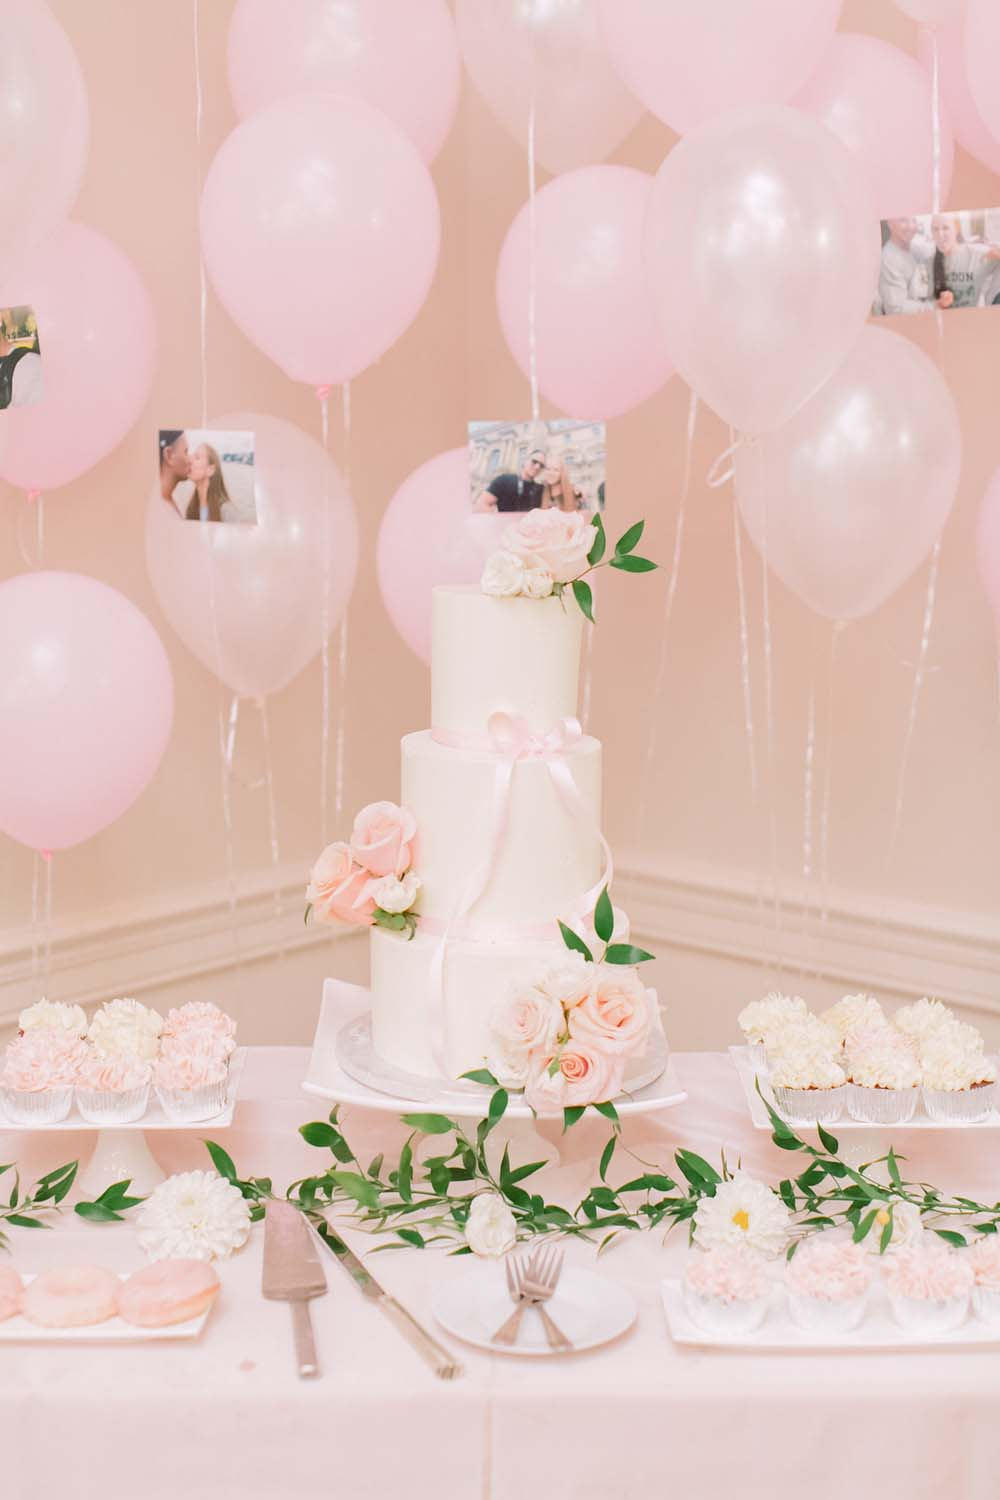 Every Single Detail You Need For A Valentine's Day Inspired Wedding - sweet table and balloons